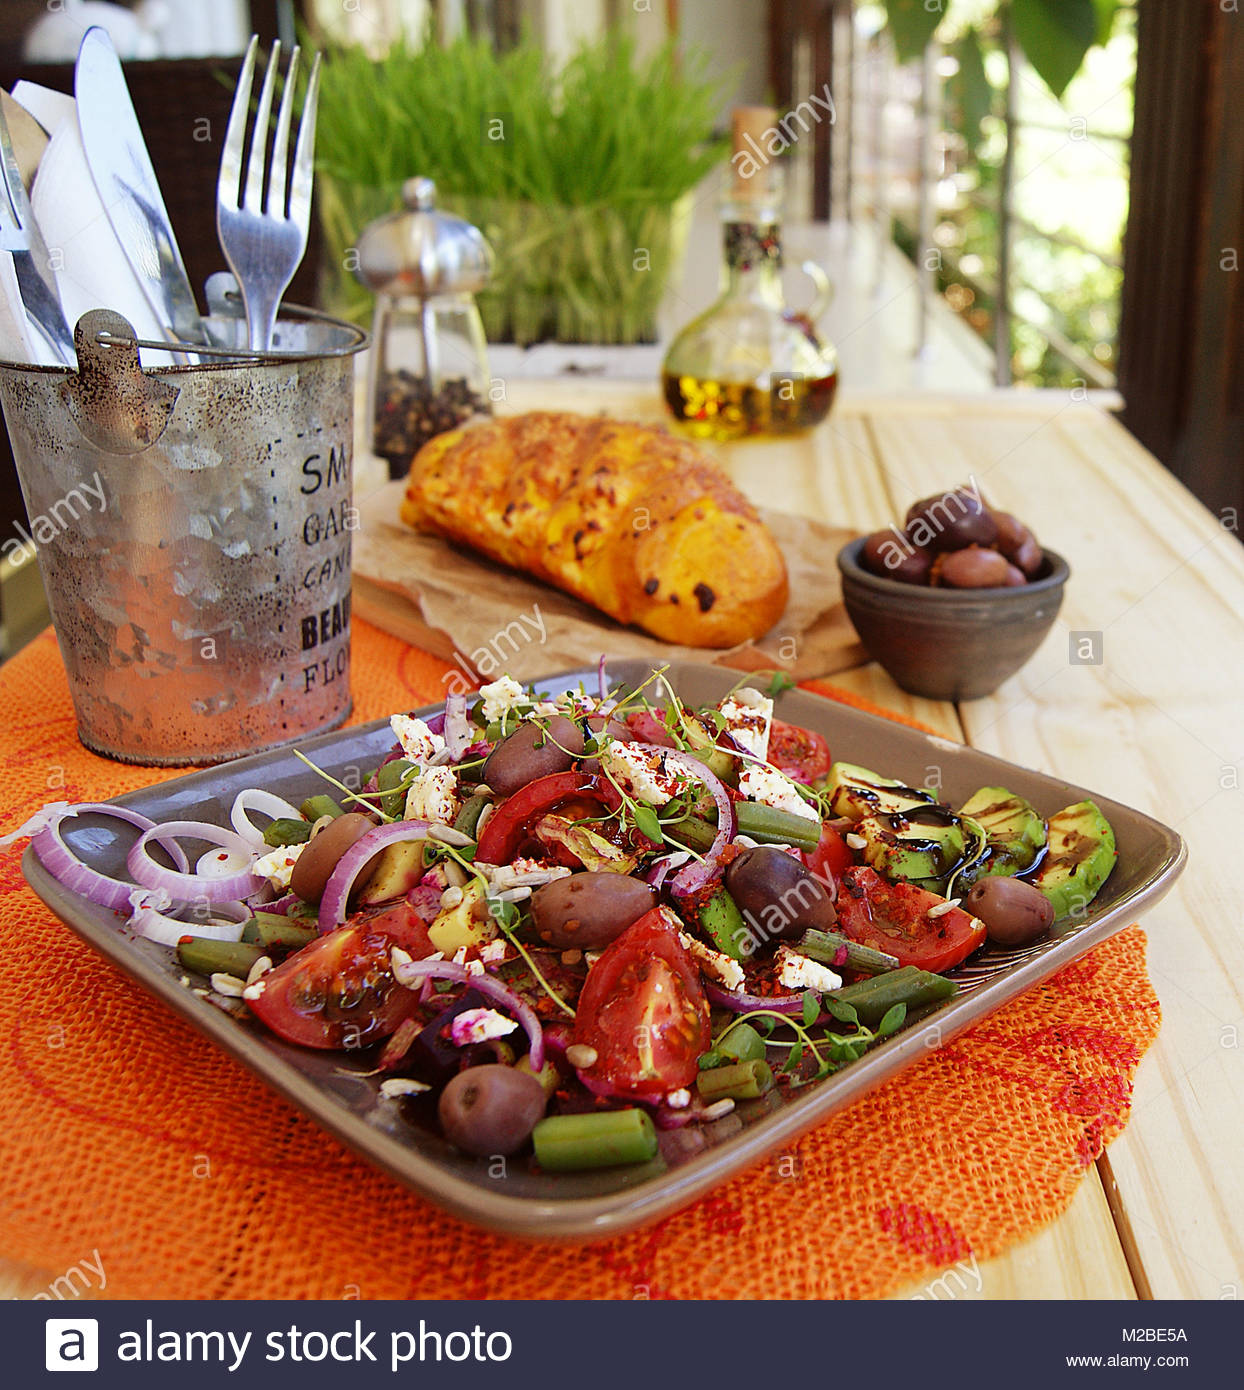 vegetable salad served on a table - Stock Image